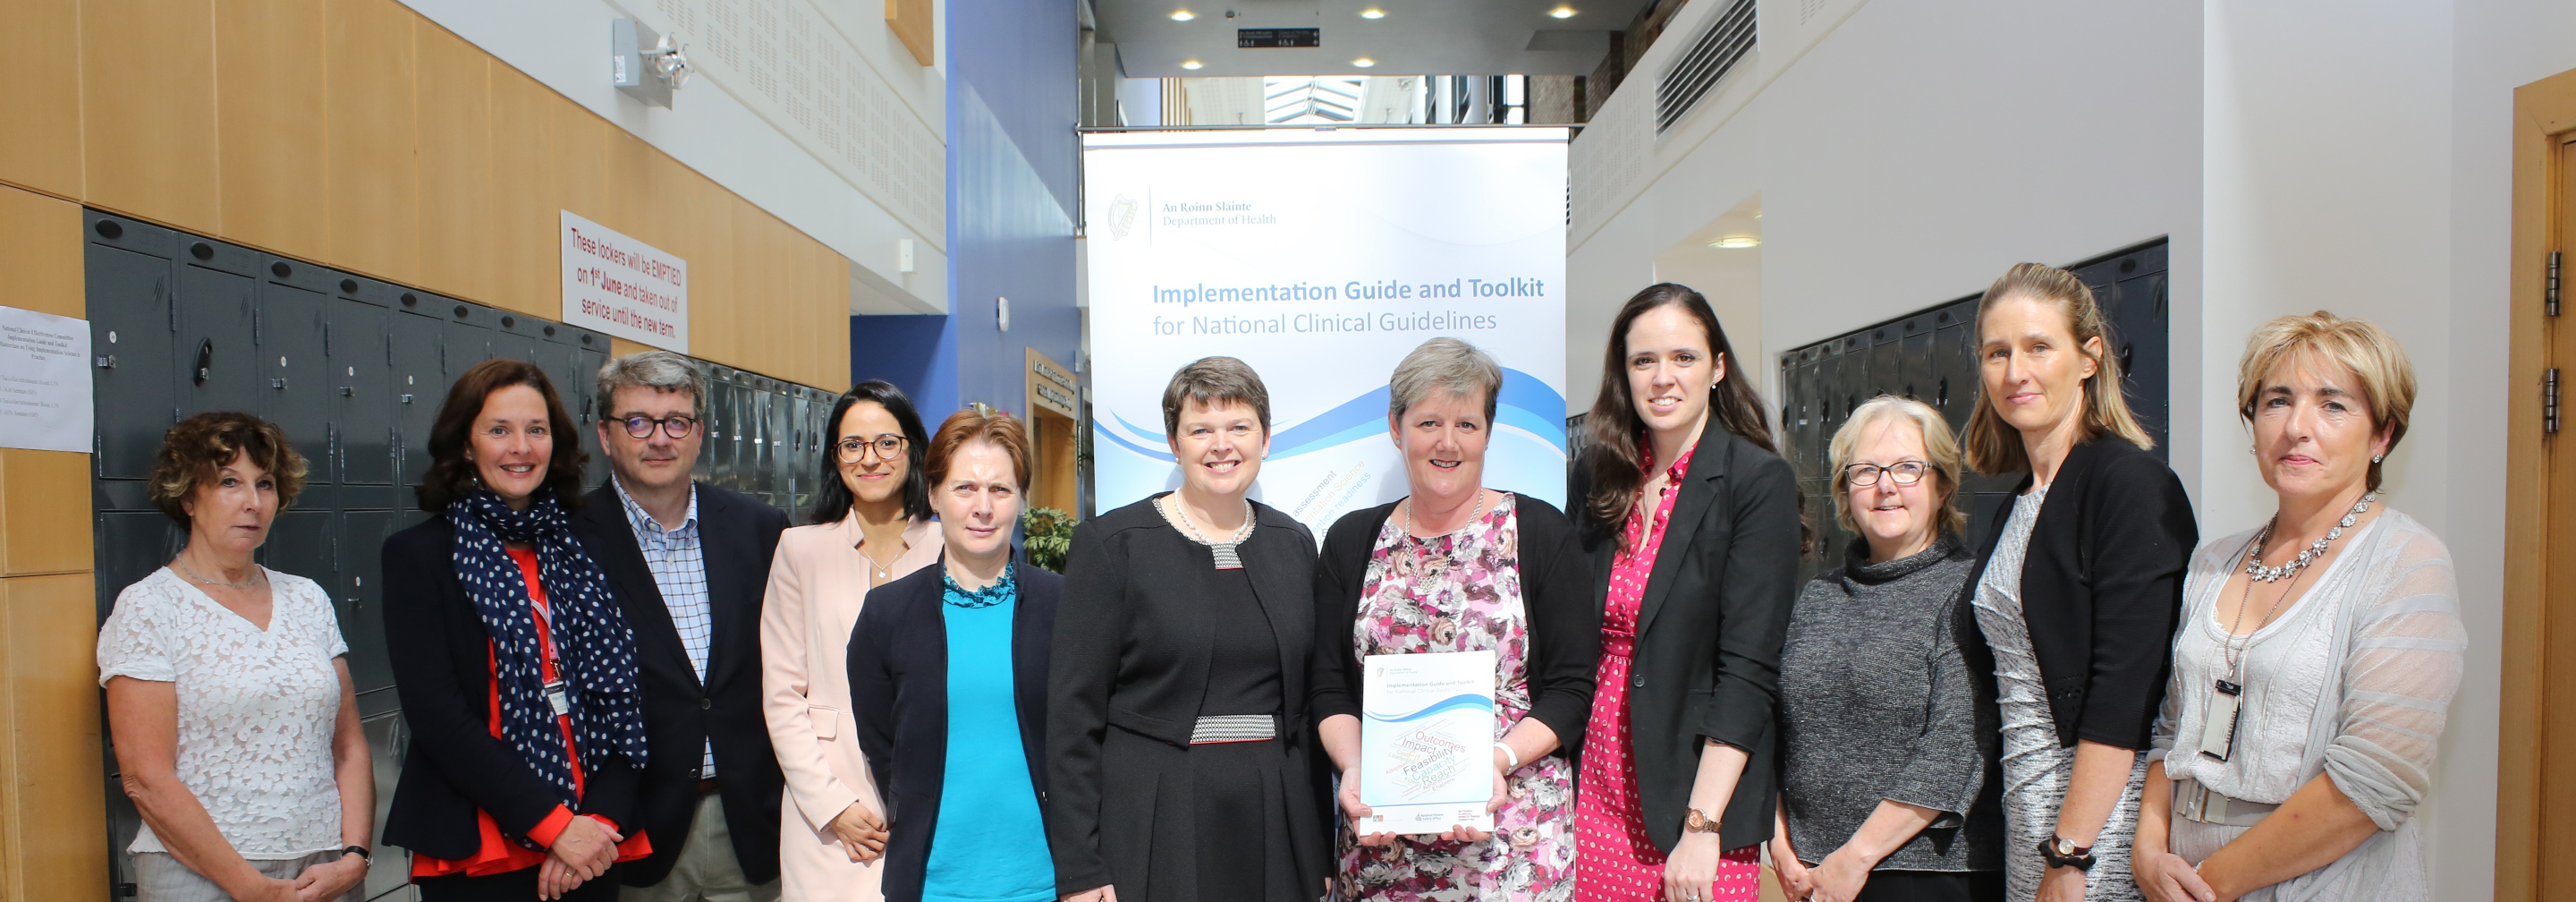 Launch of Implementation Guide